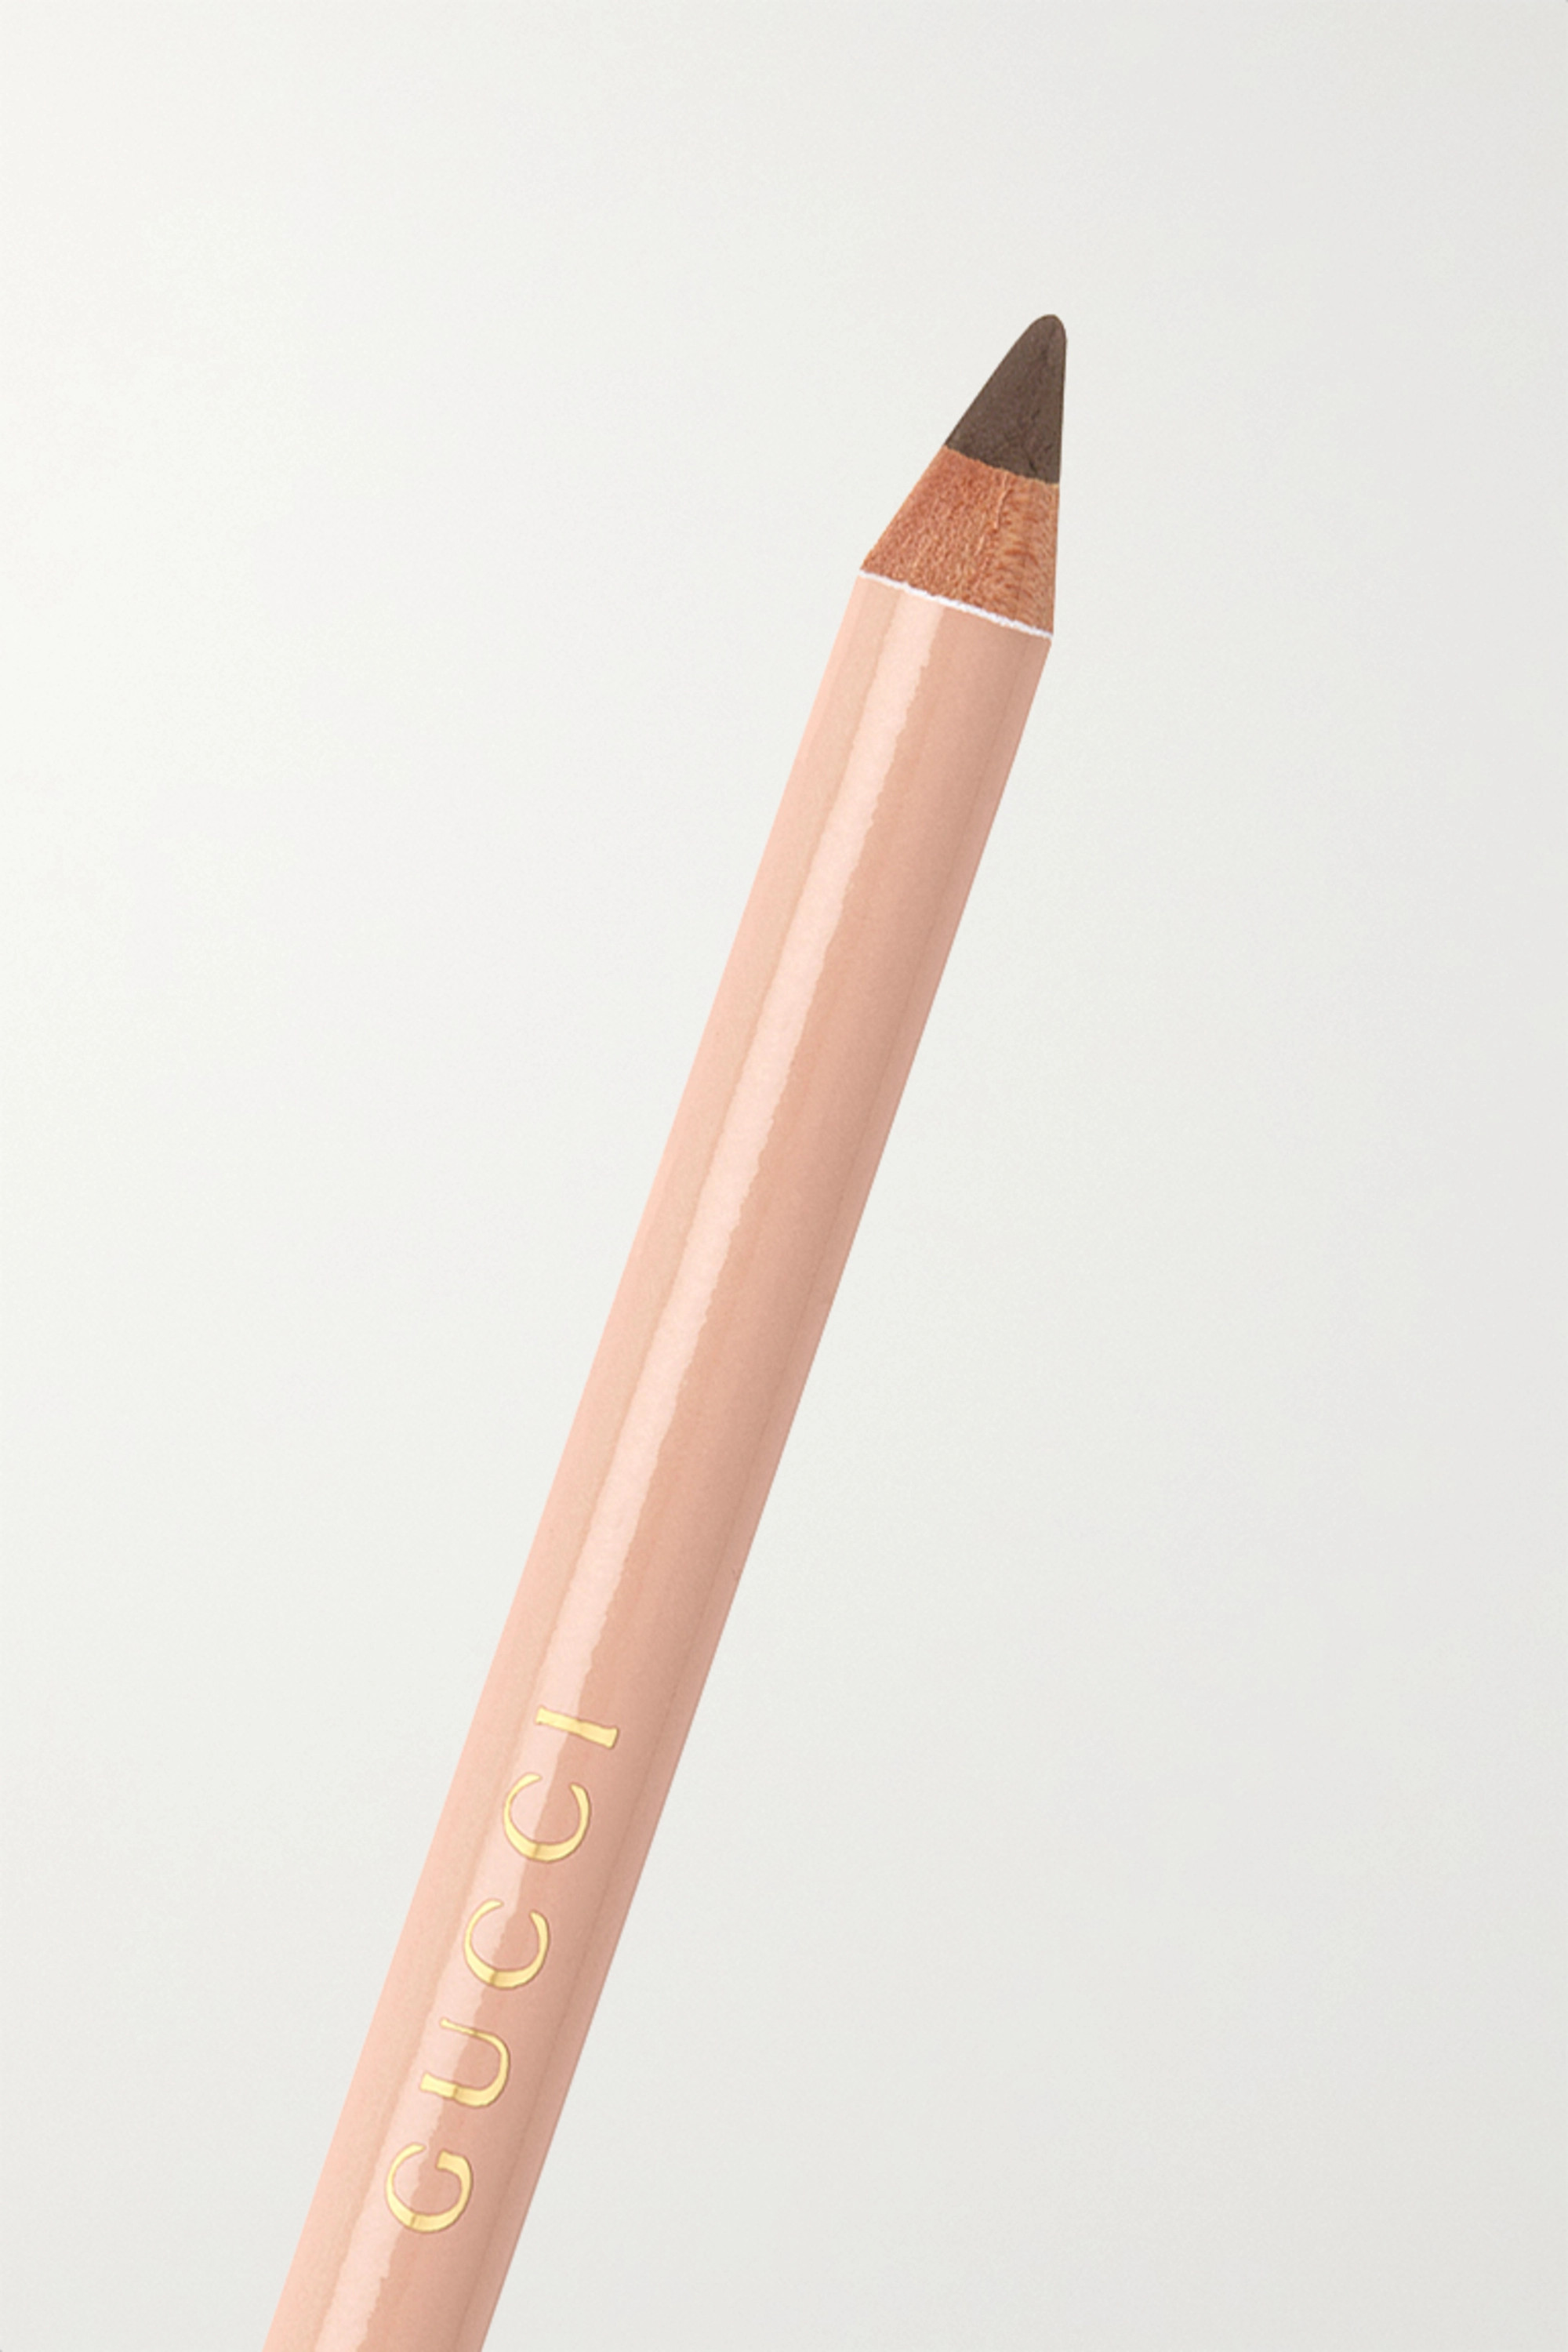 Gucci Beauty Powder Eyebrow Pencil - Light Brown